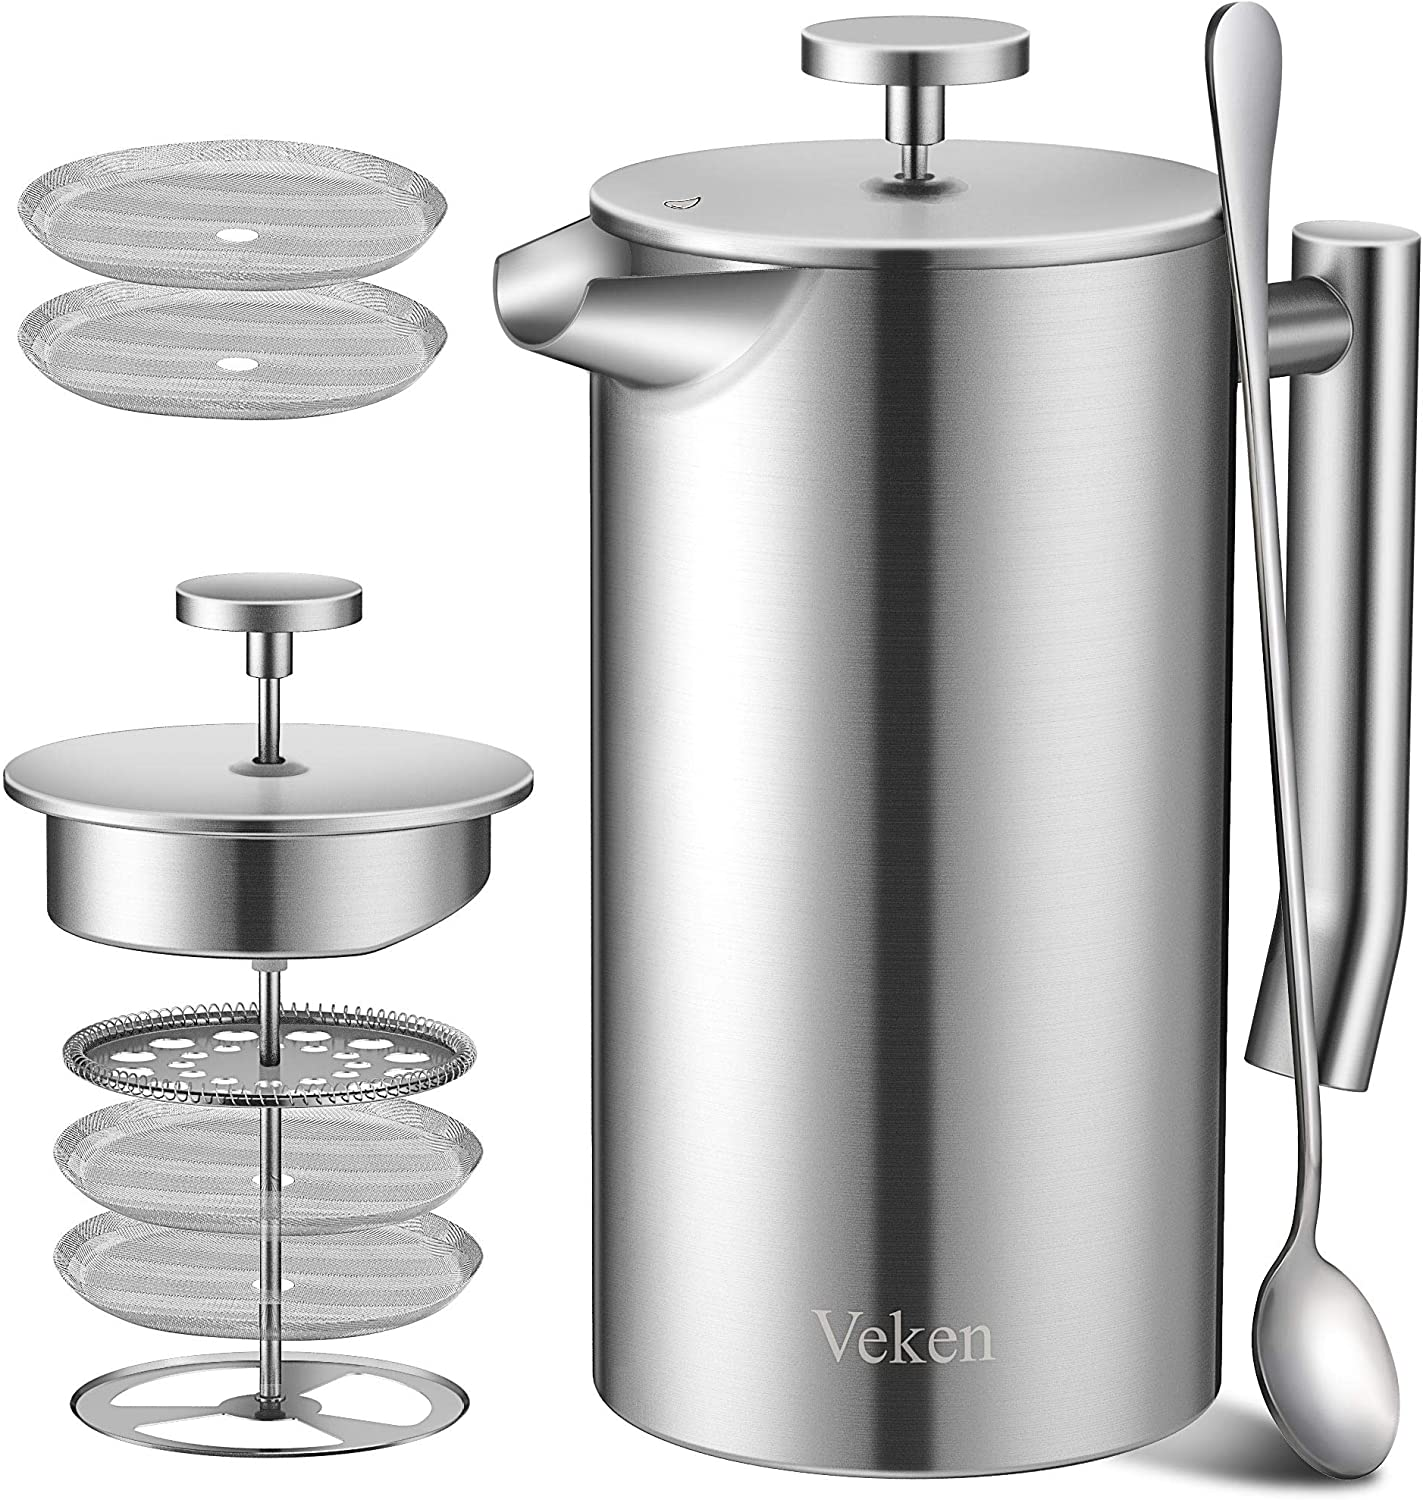 Veken French Press Double-Wall 18 10 Stainless Steel Coffee Tea Maker, Multi-Screen System, 2 Extra Filters Included, Rust-Free, Dishwasher Safe, 1L